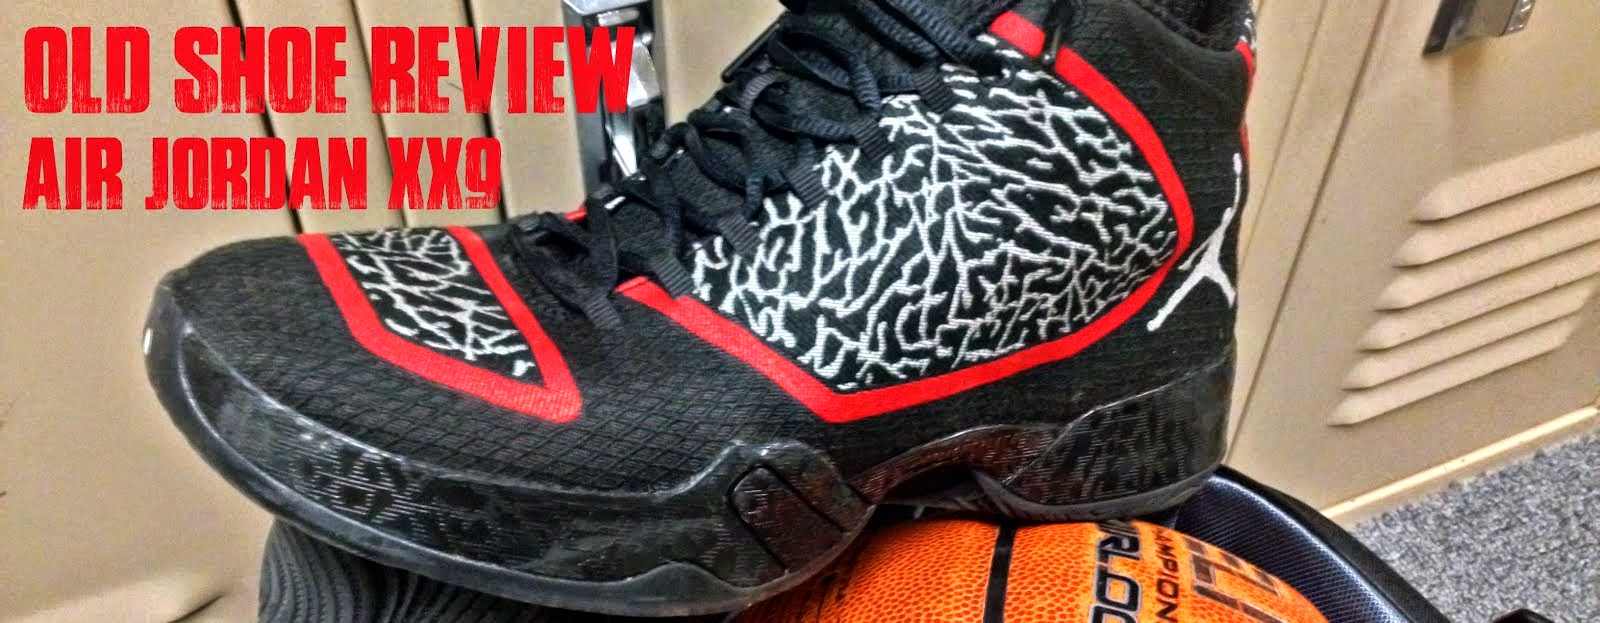 Old Shoe Review: Improving (slightly) on the Air Jordan XX9